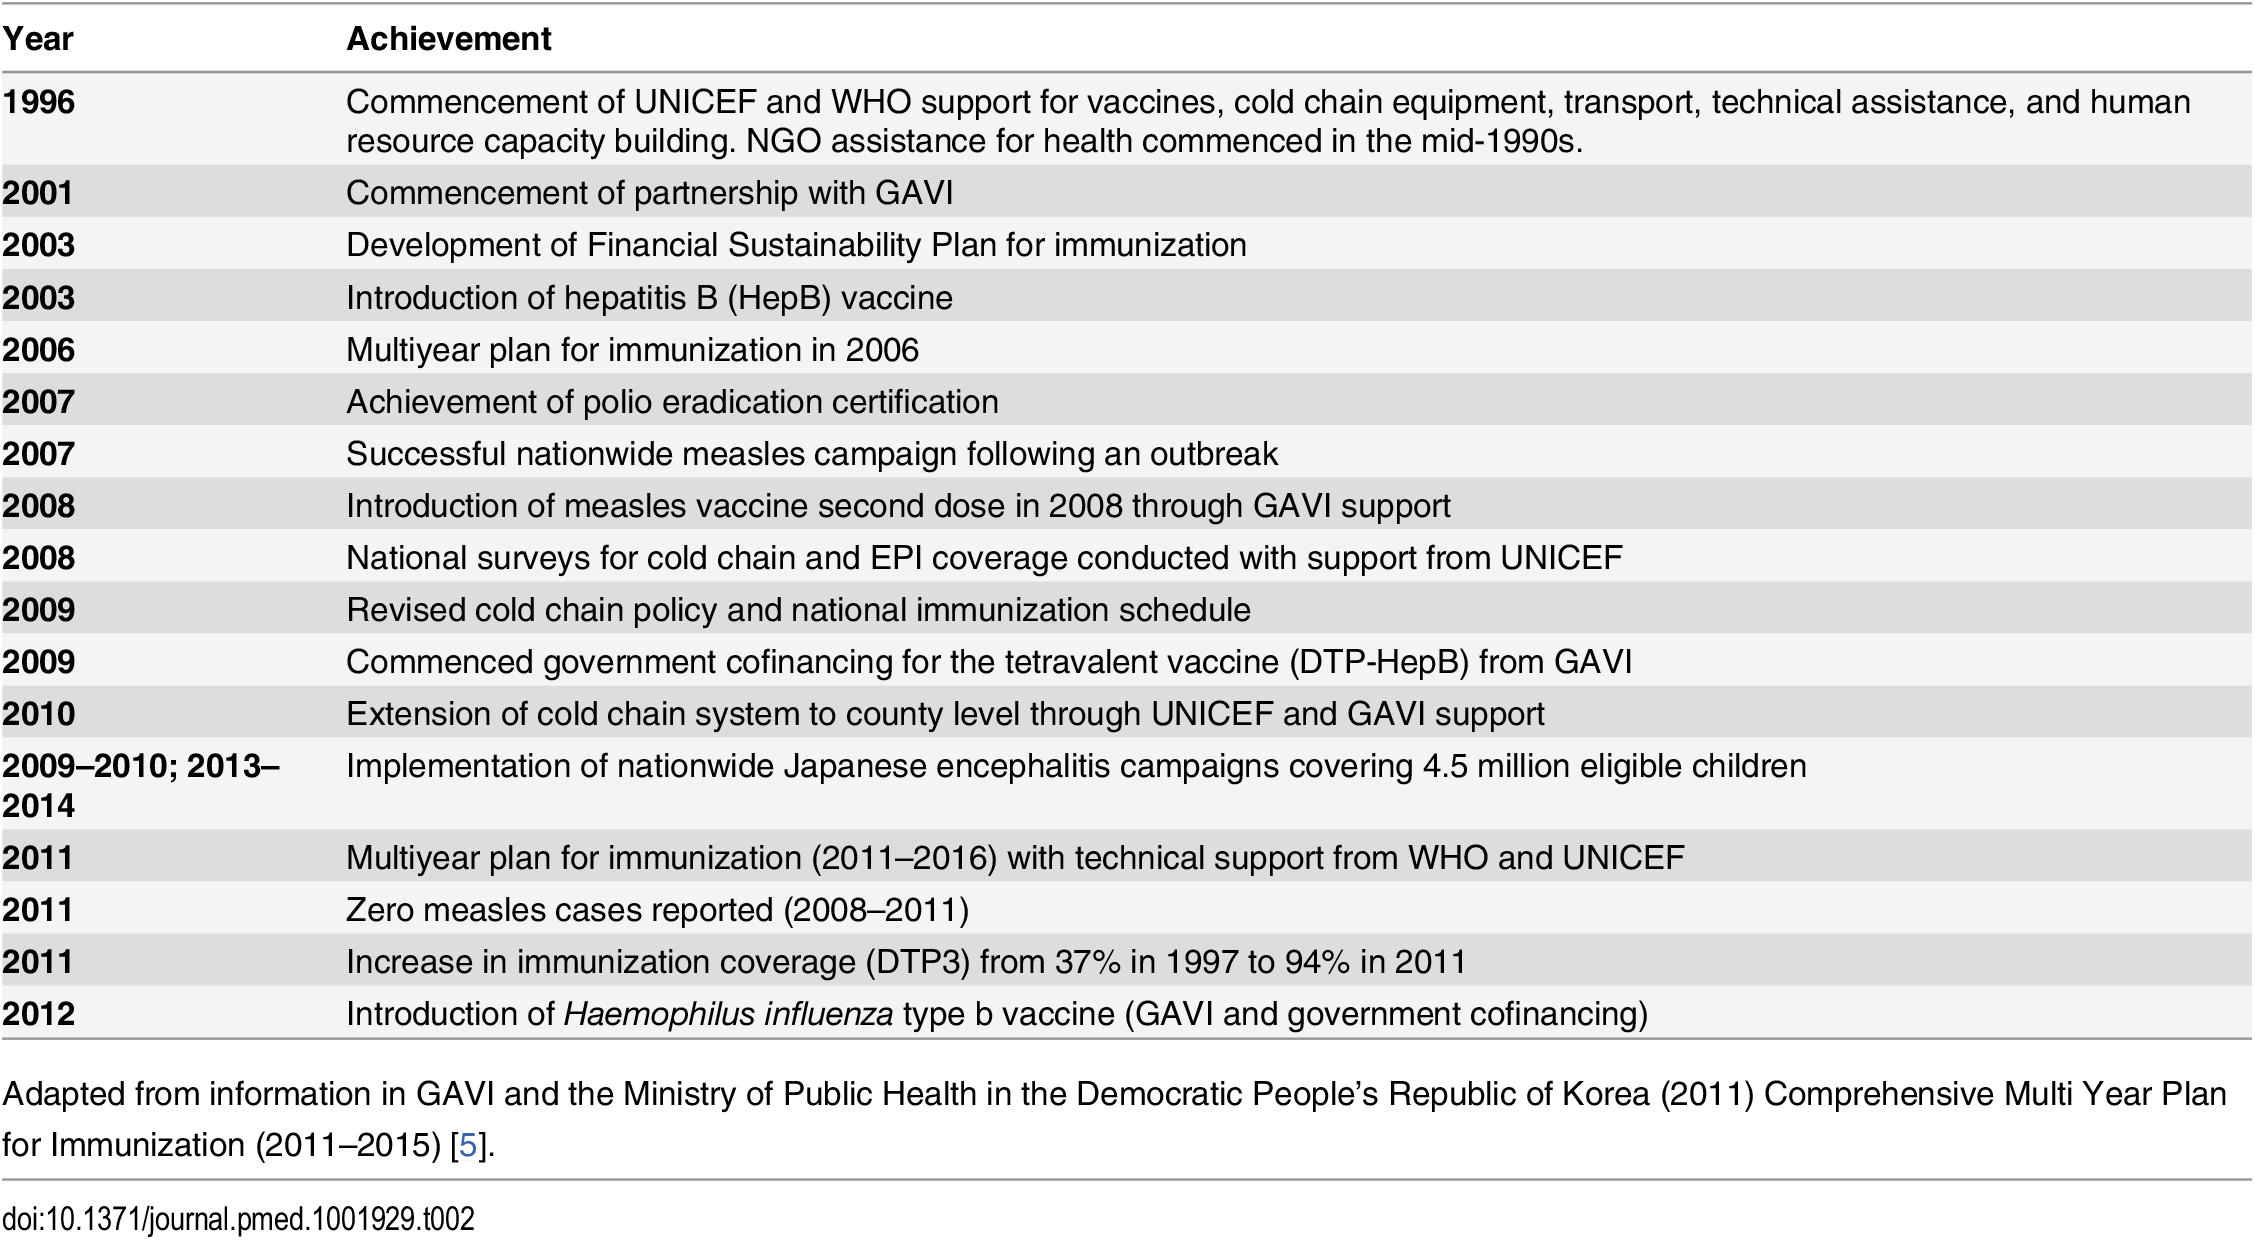 Timeline of international support for and achievements in immunization in DPRK, 1996–2012.